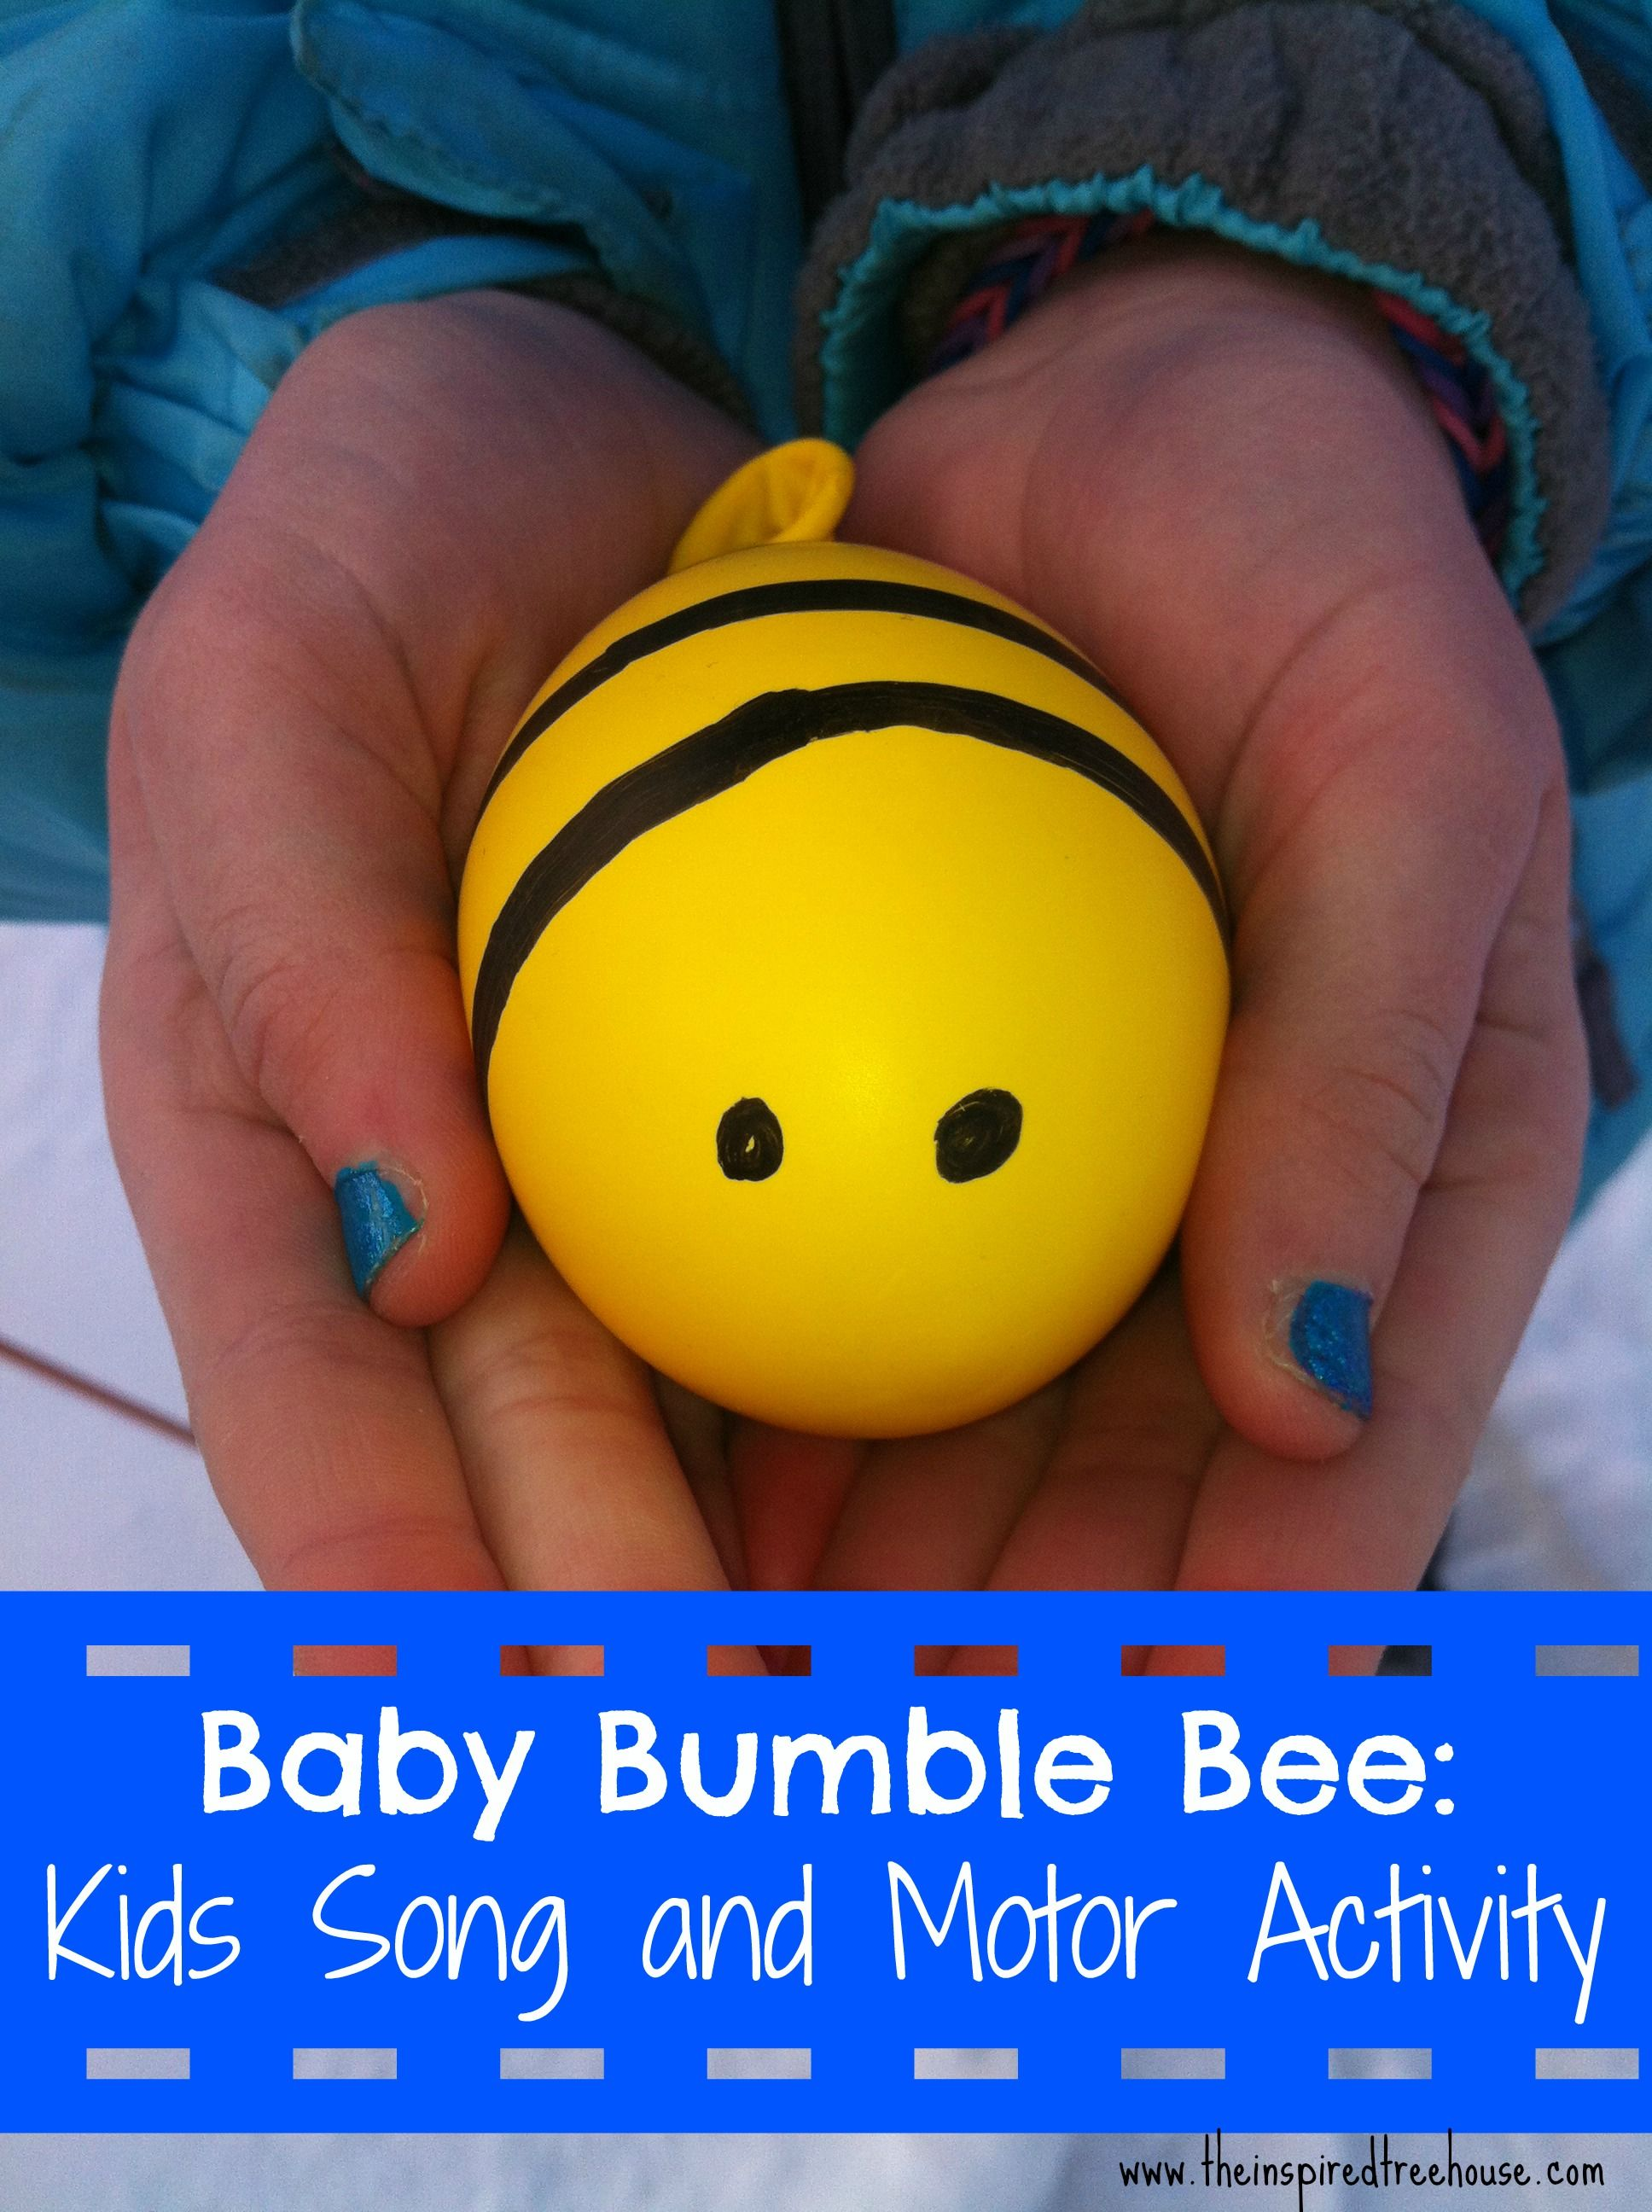 Baby Bumble Bee Movement Activity For Kids